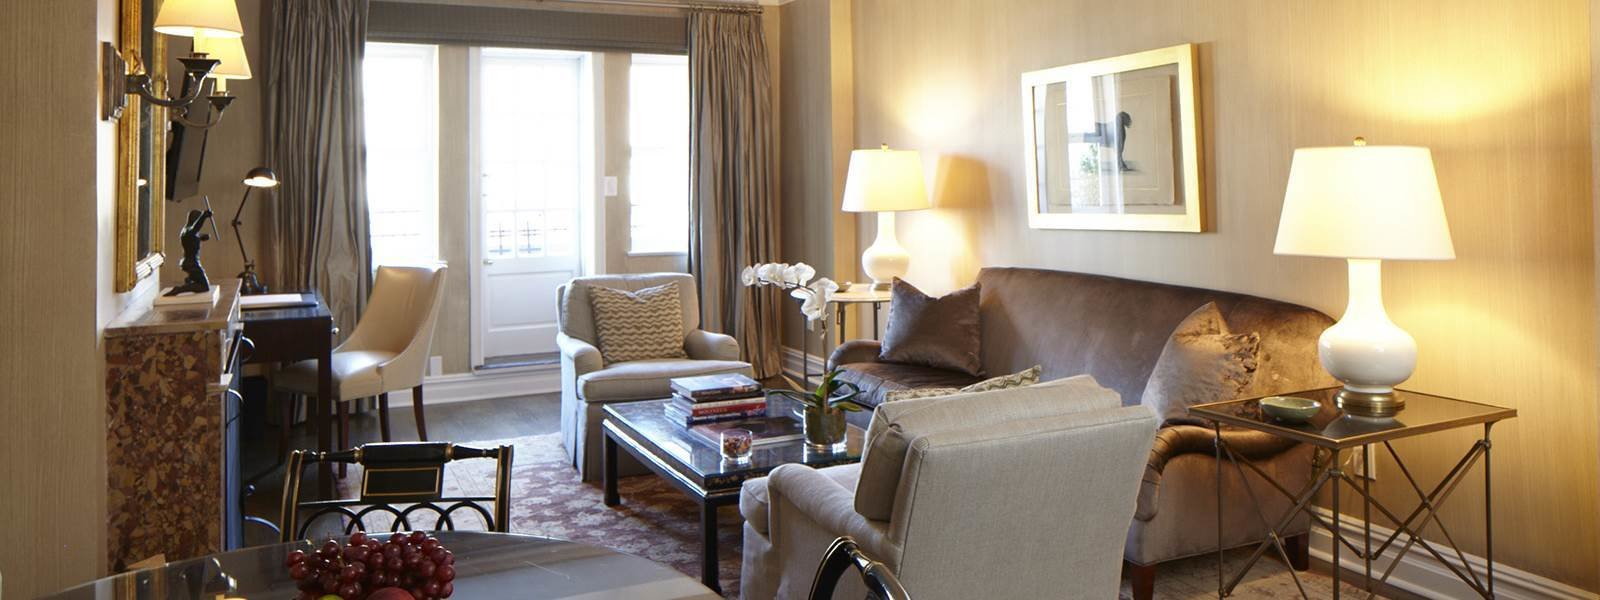 Best Two Bedroom Suite New York Hotels With 2 Bedroom Suites With Pictures